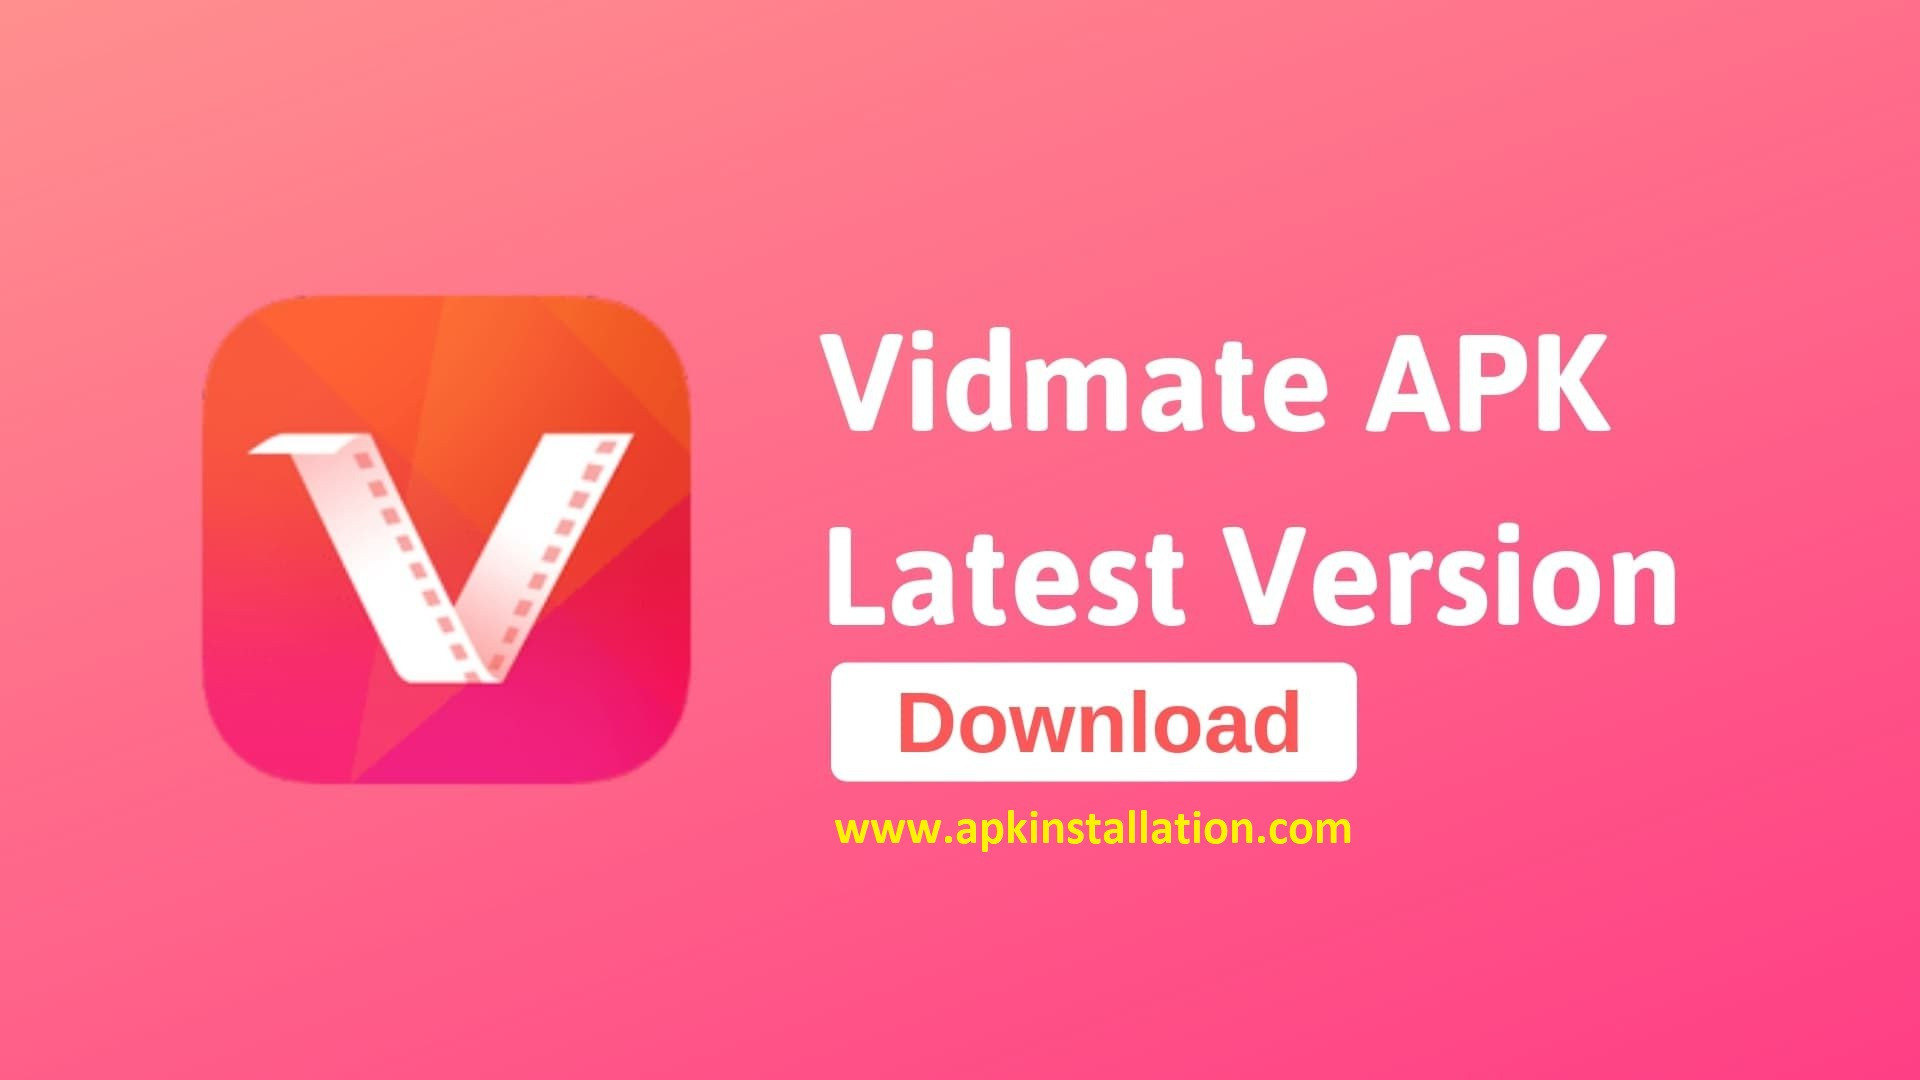 VidMate APP Free Download FOR ANDROID - Apk Installation